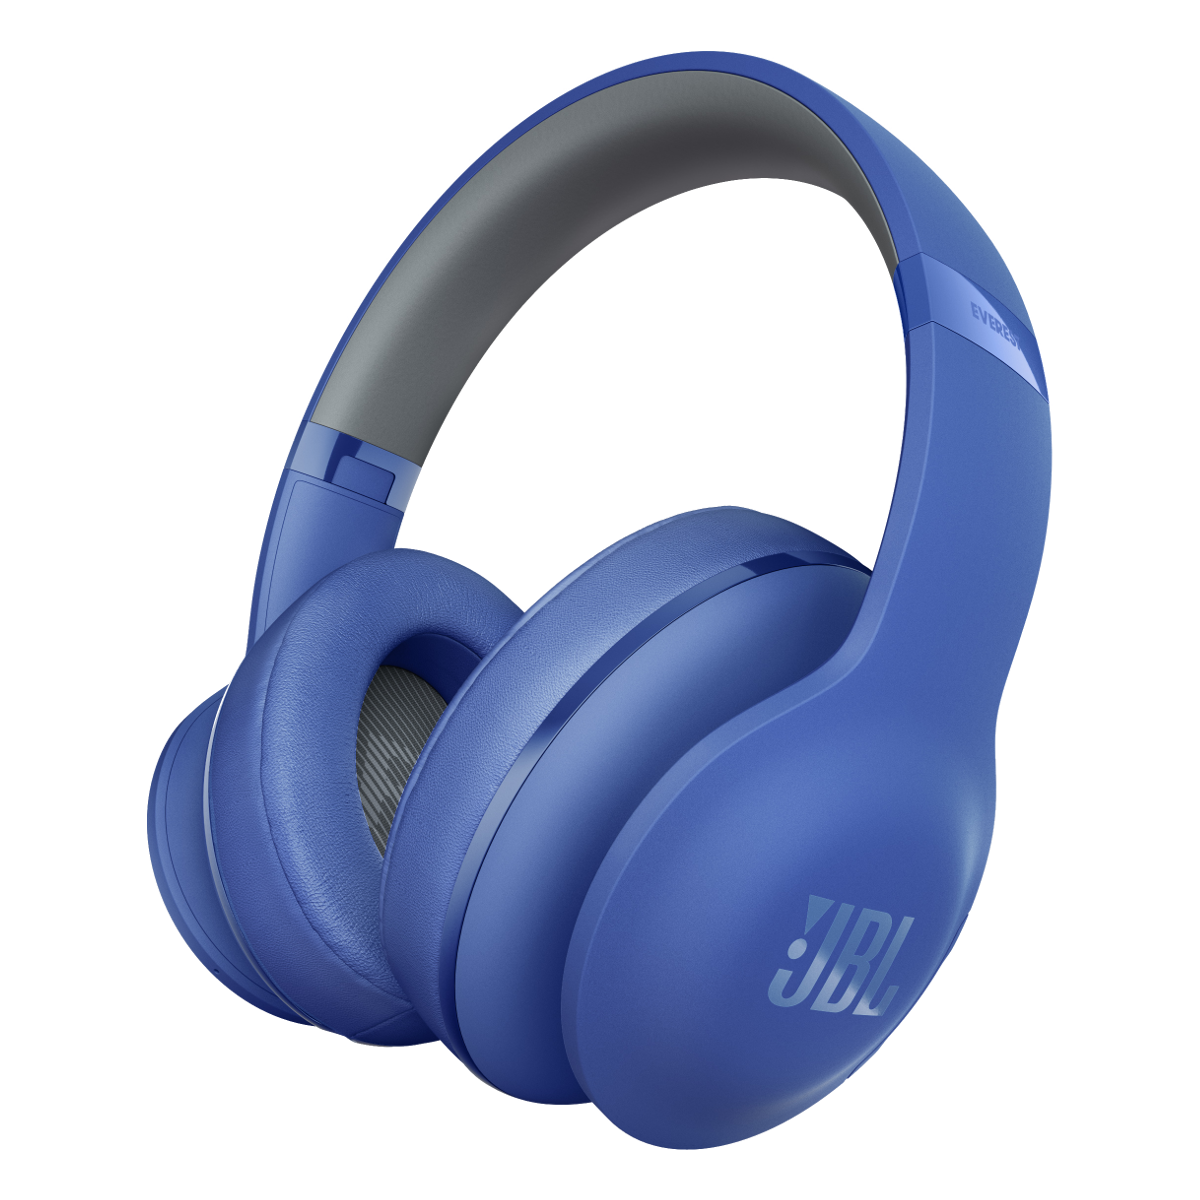 JBL Everest 700 Blue